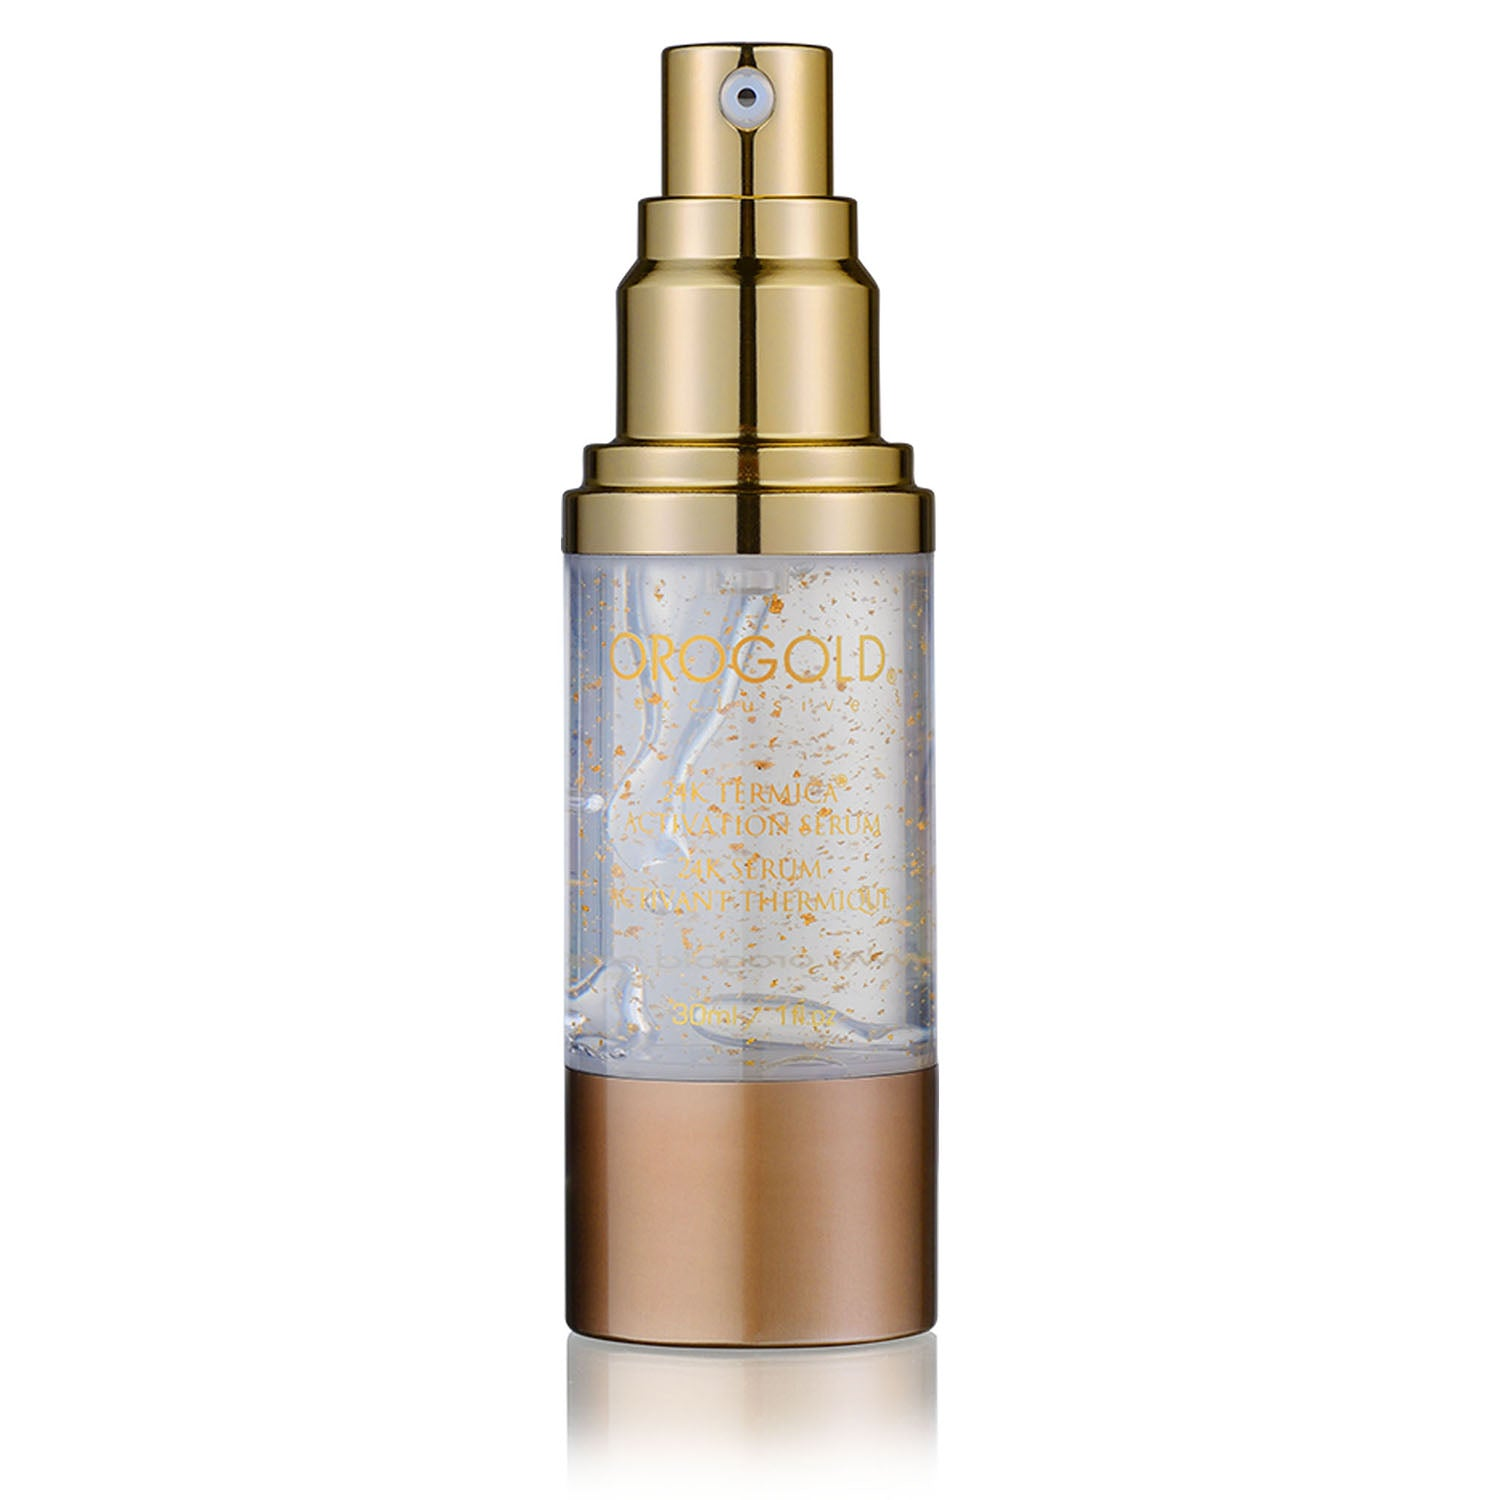 orogold anti wrinkle termica serum